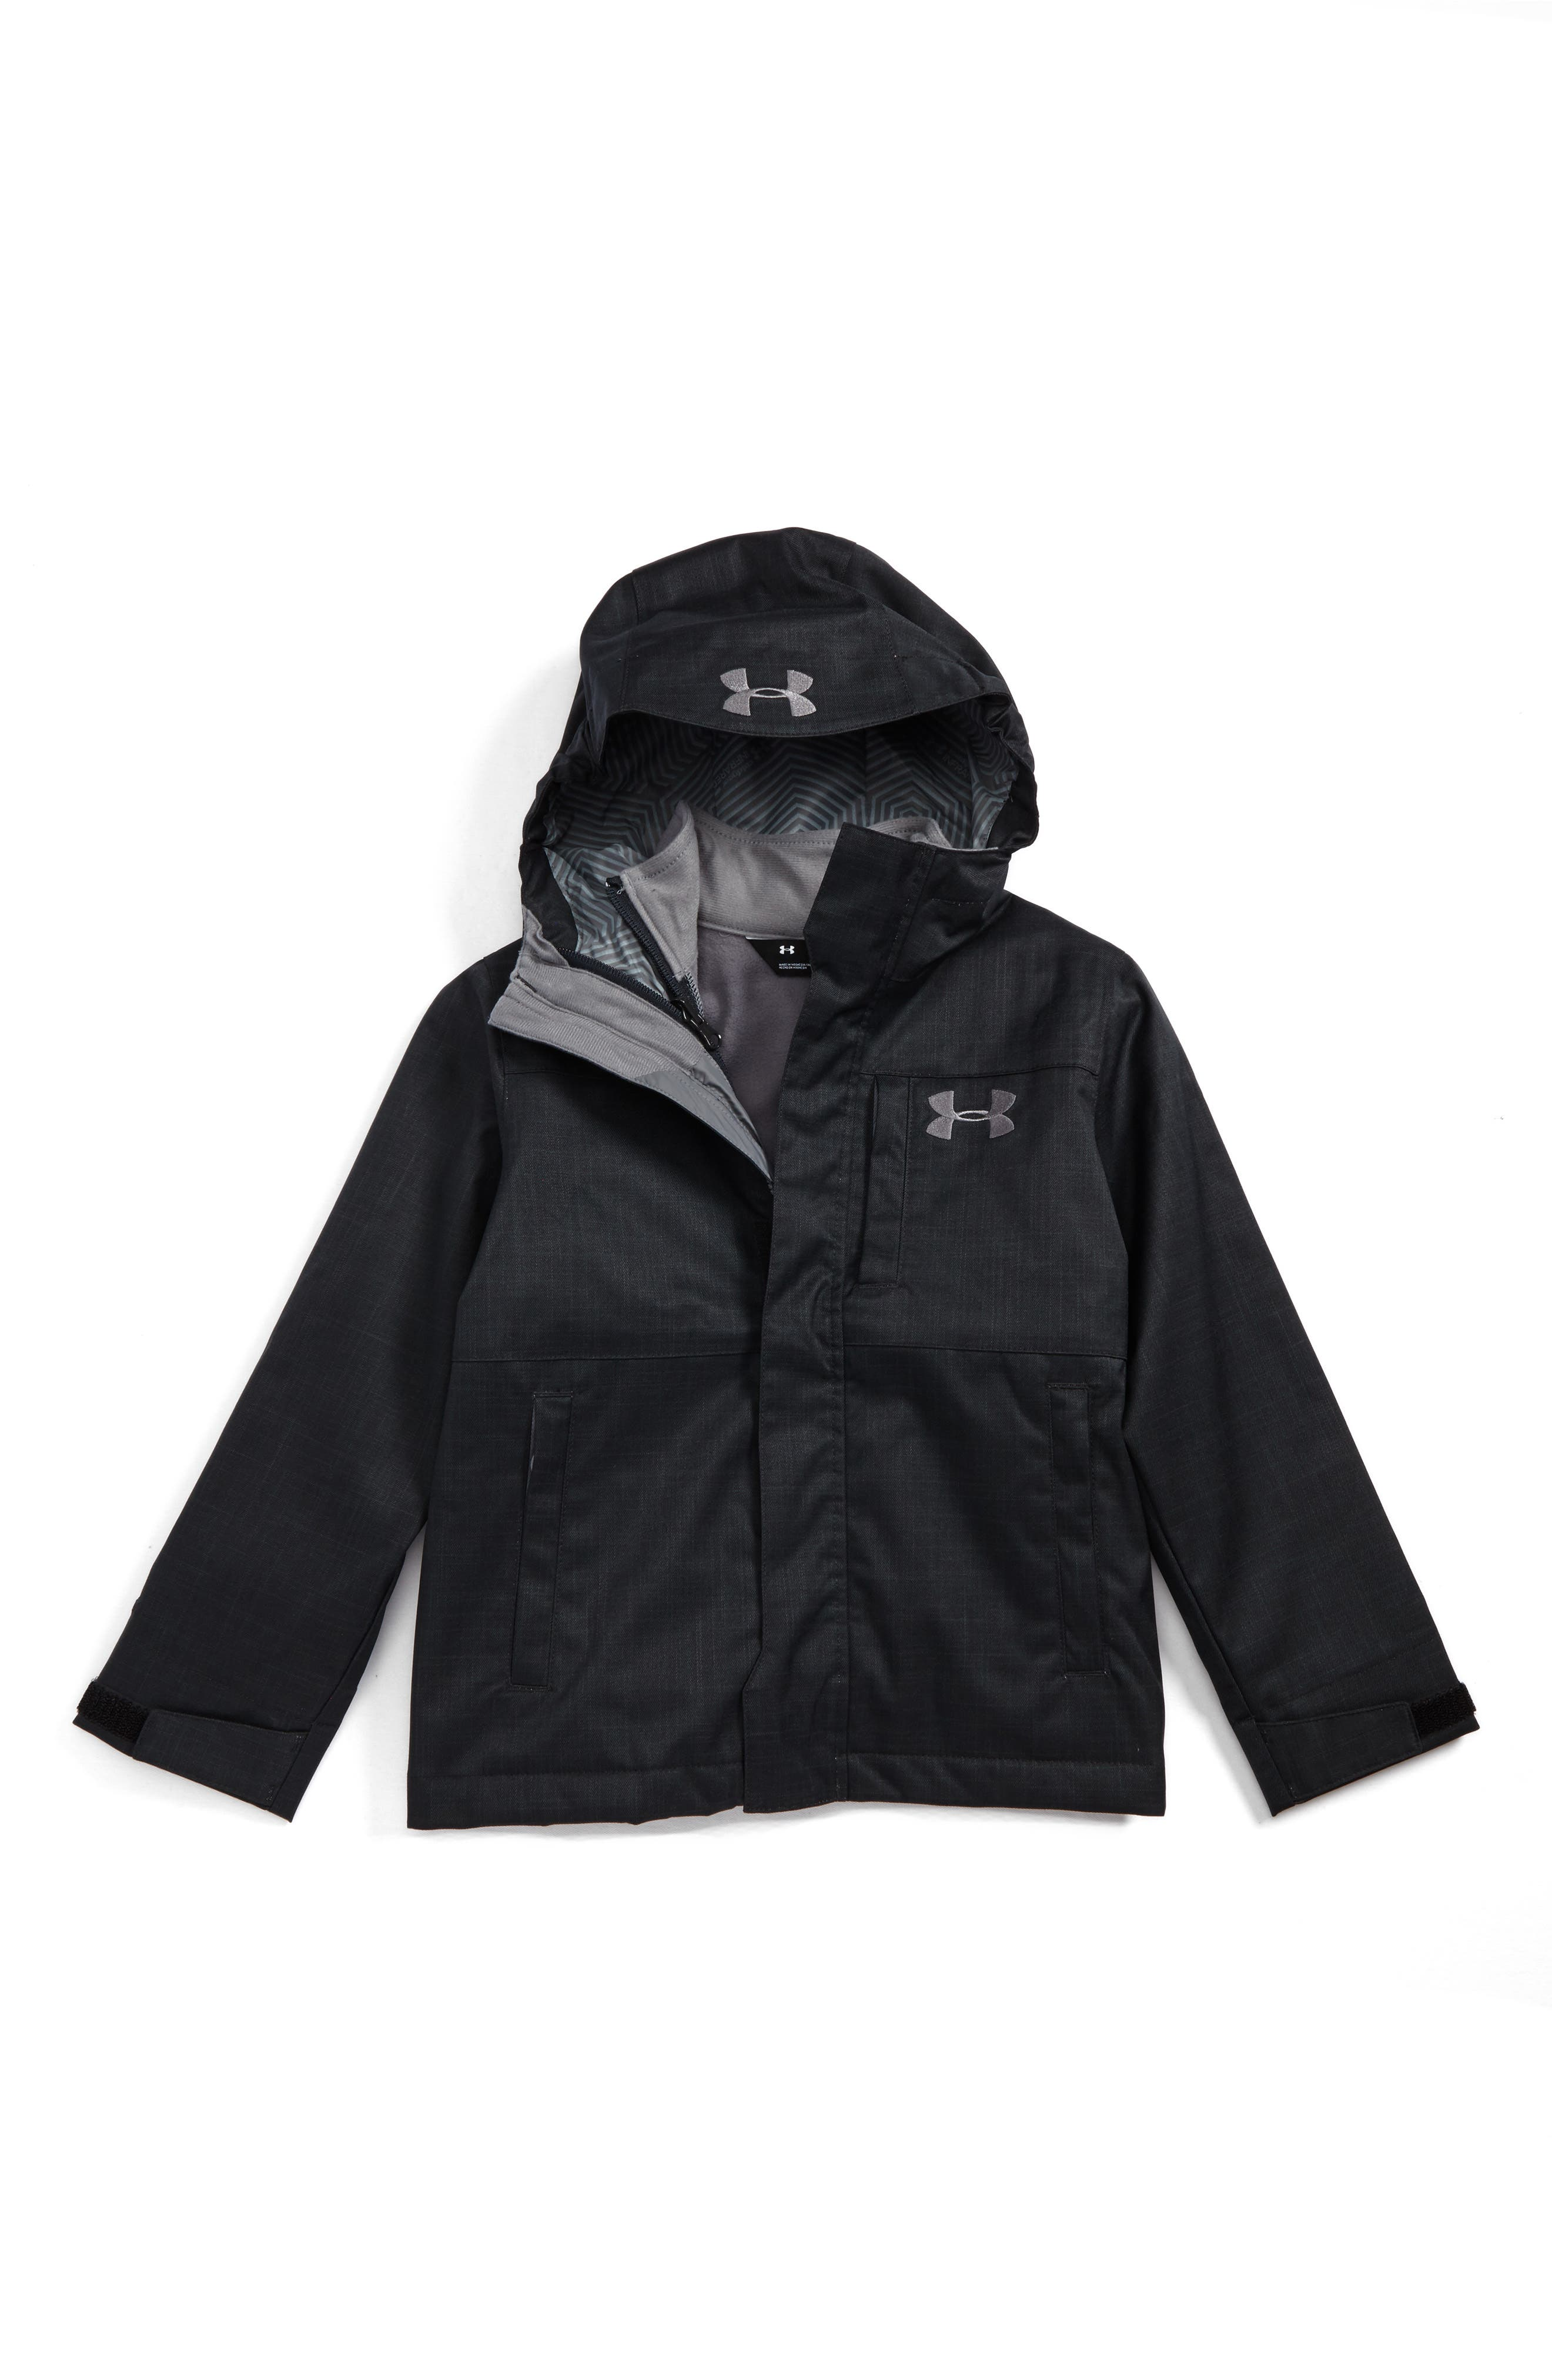 Wildwood ColdGear<sup>®</sup> 3-in-1 Jacket,                         Main,                         color, Black/ Graphite